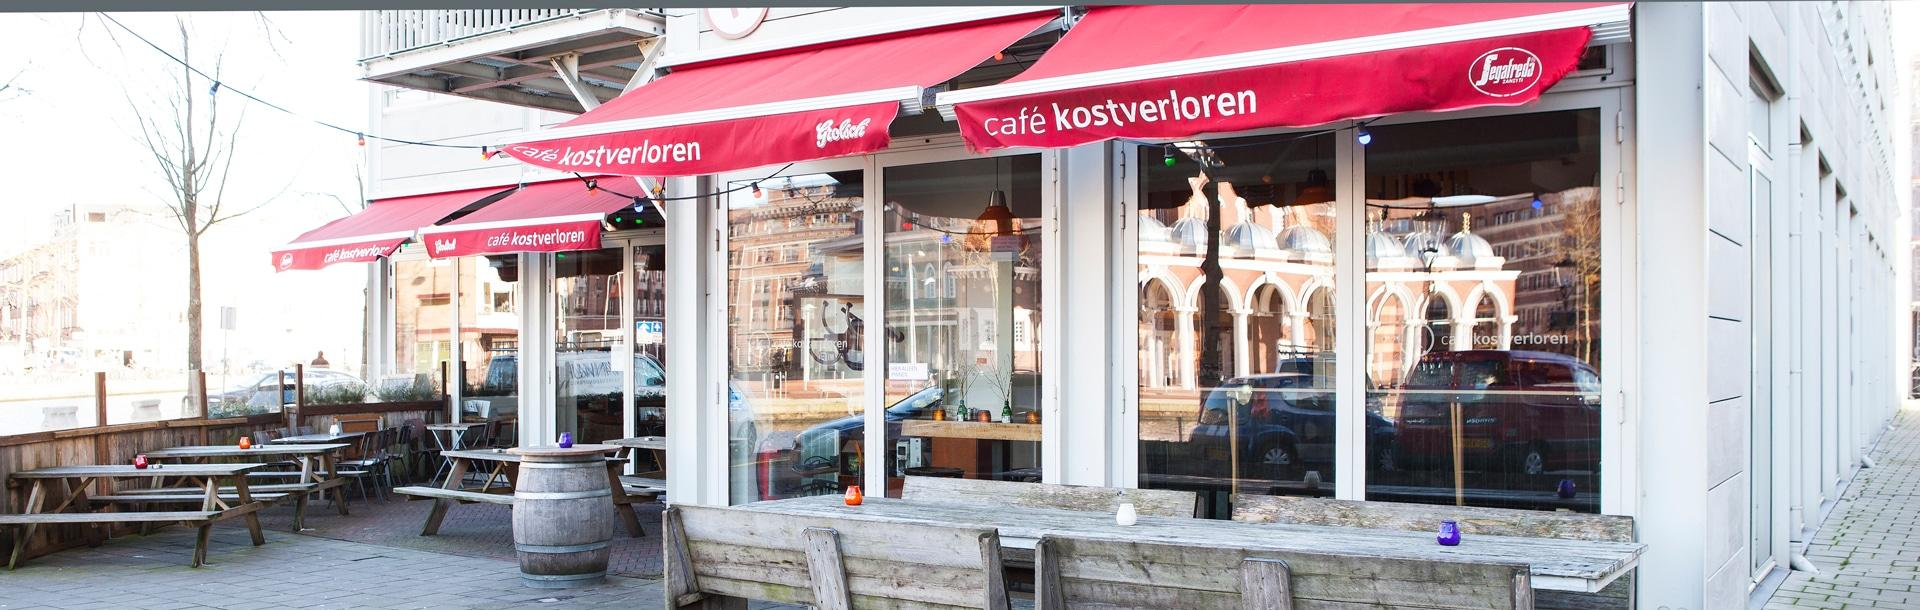 Cafe_Kosteverloren_Nice2know_locatie